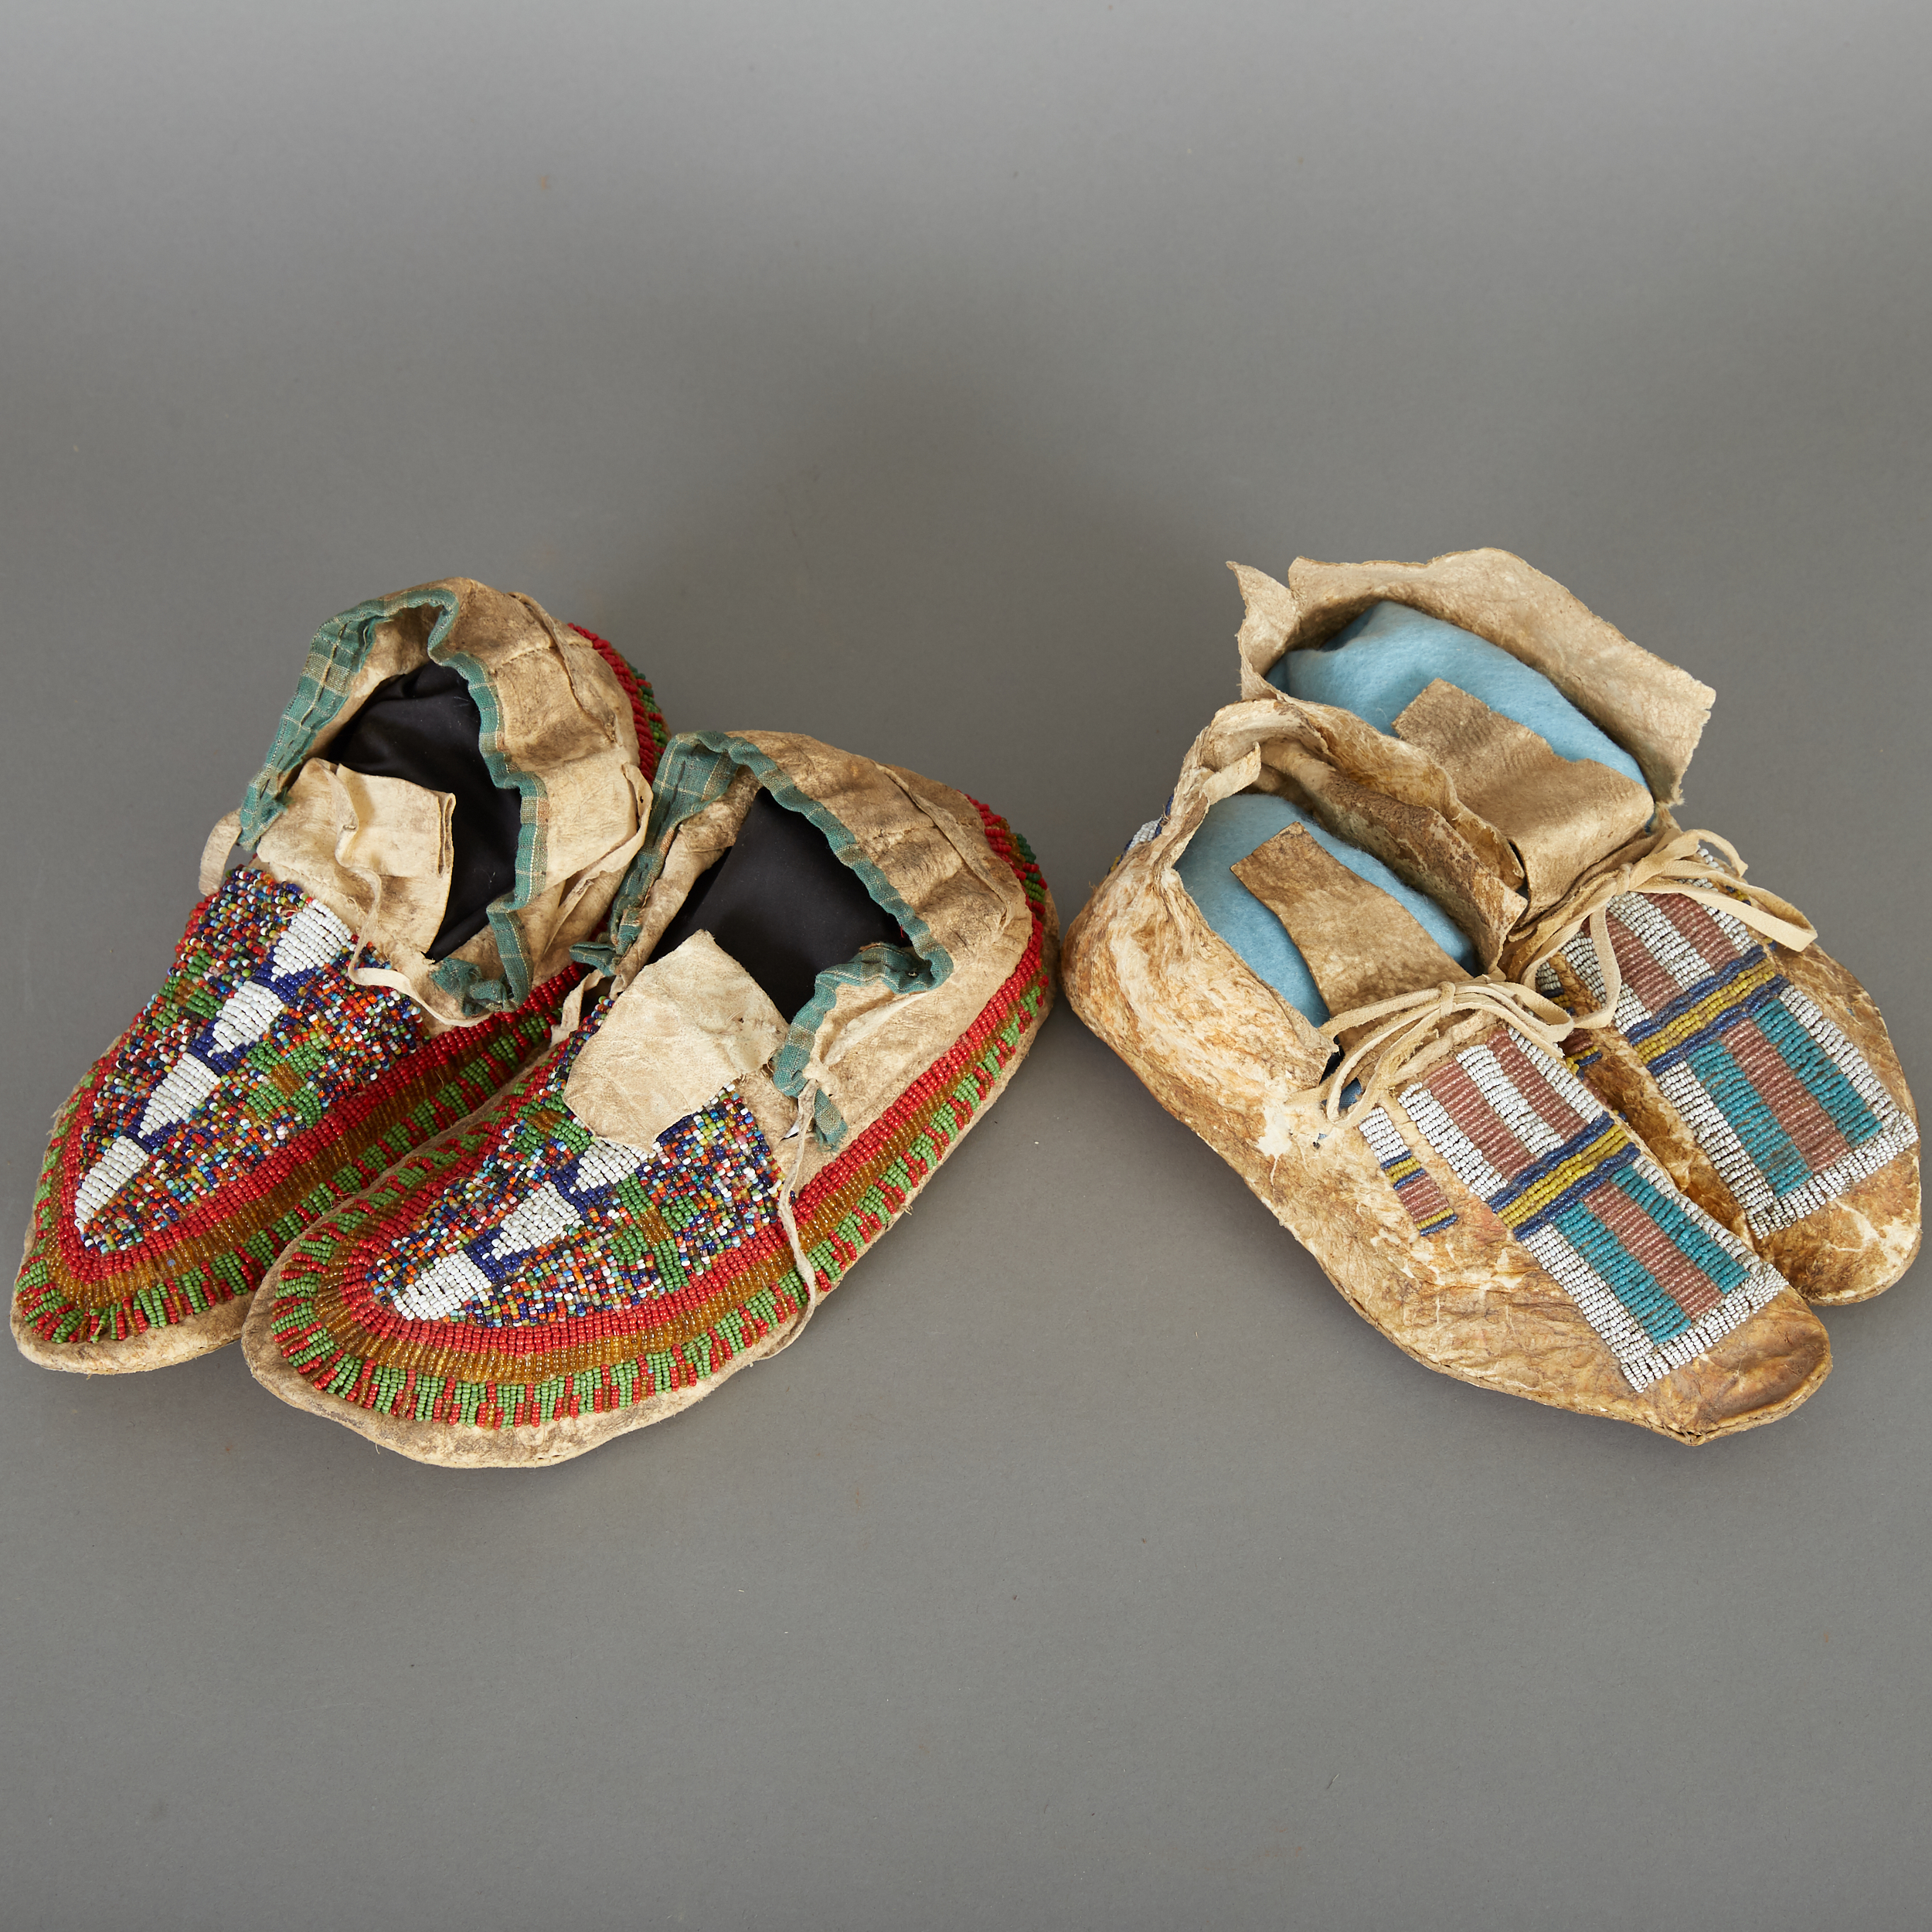 Lot 243 - 2 Pairs Arapaho Beaded Moccasins Late 19th c.